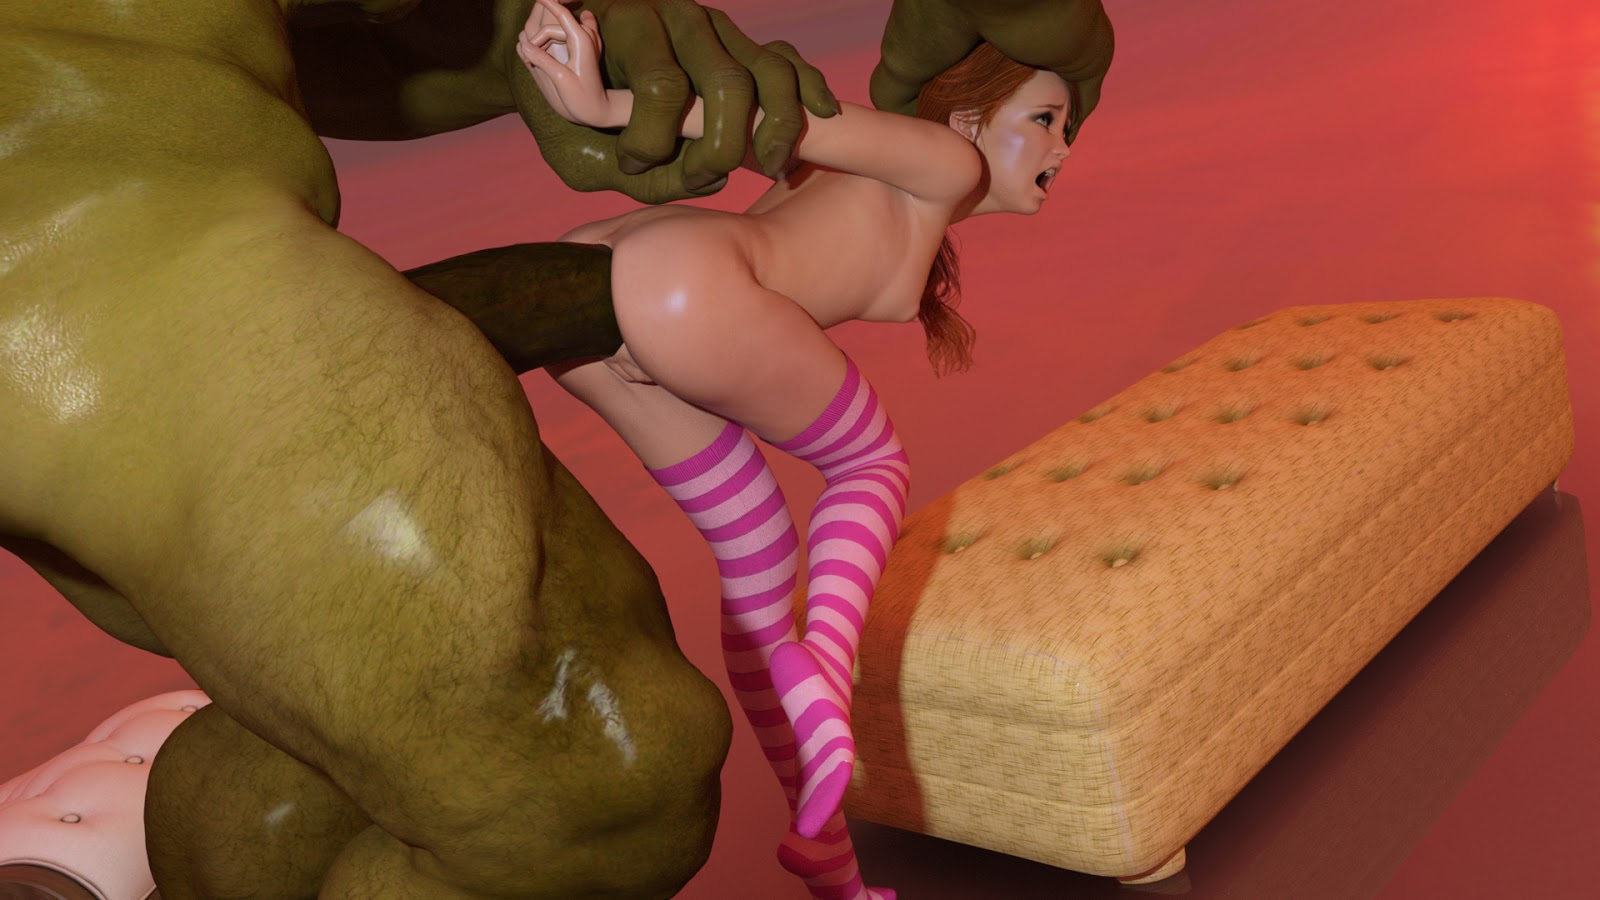 Fantasy nude warrior female captured porn scenes